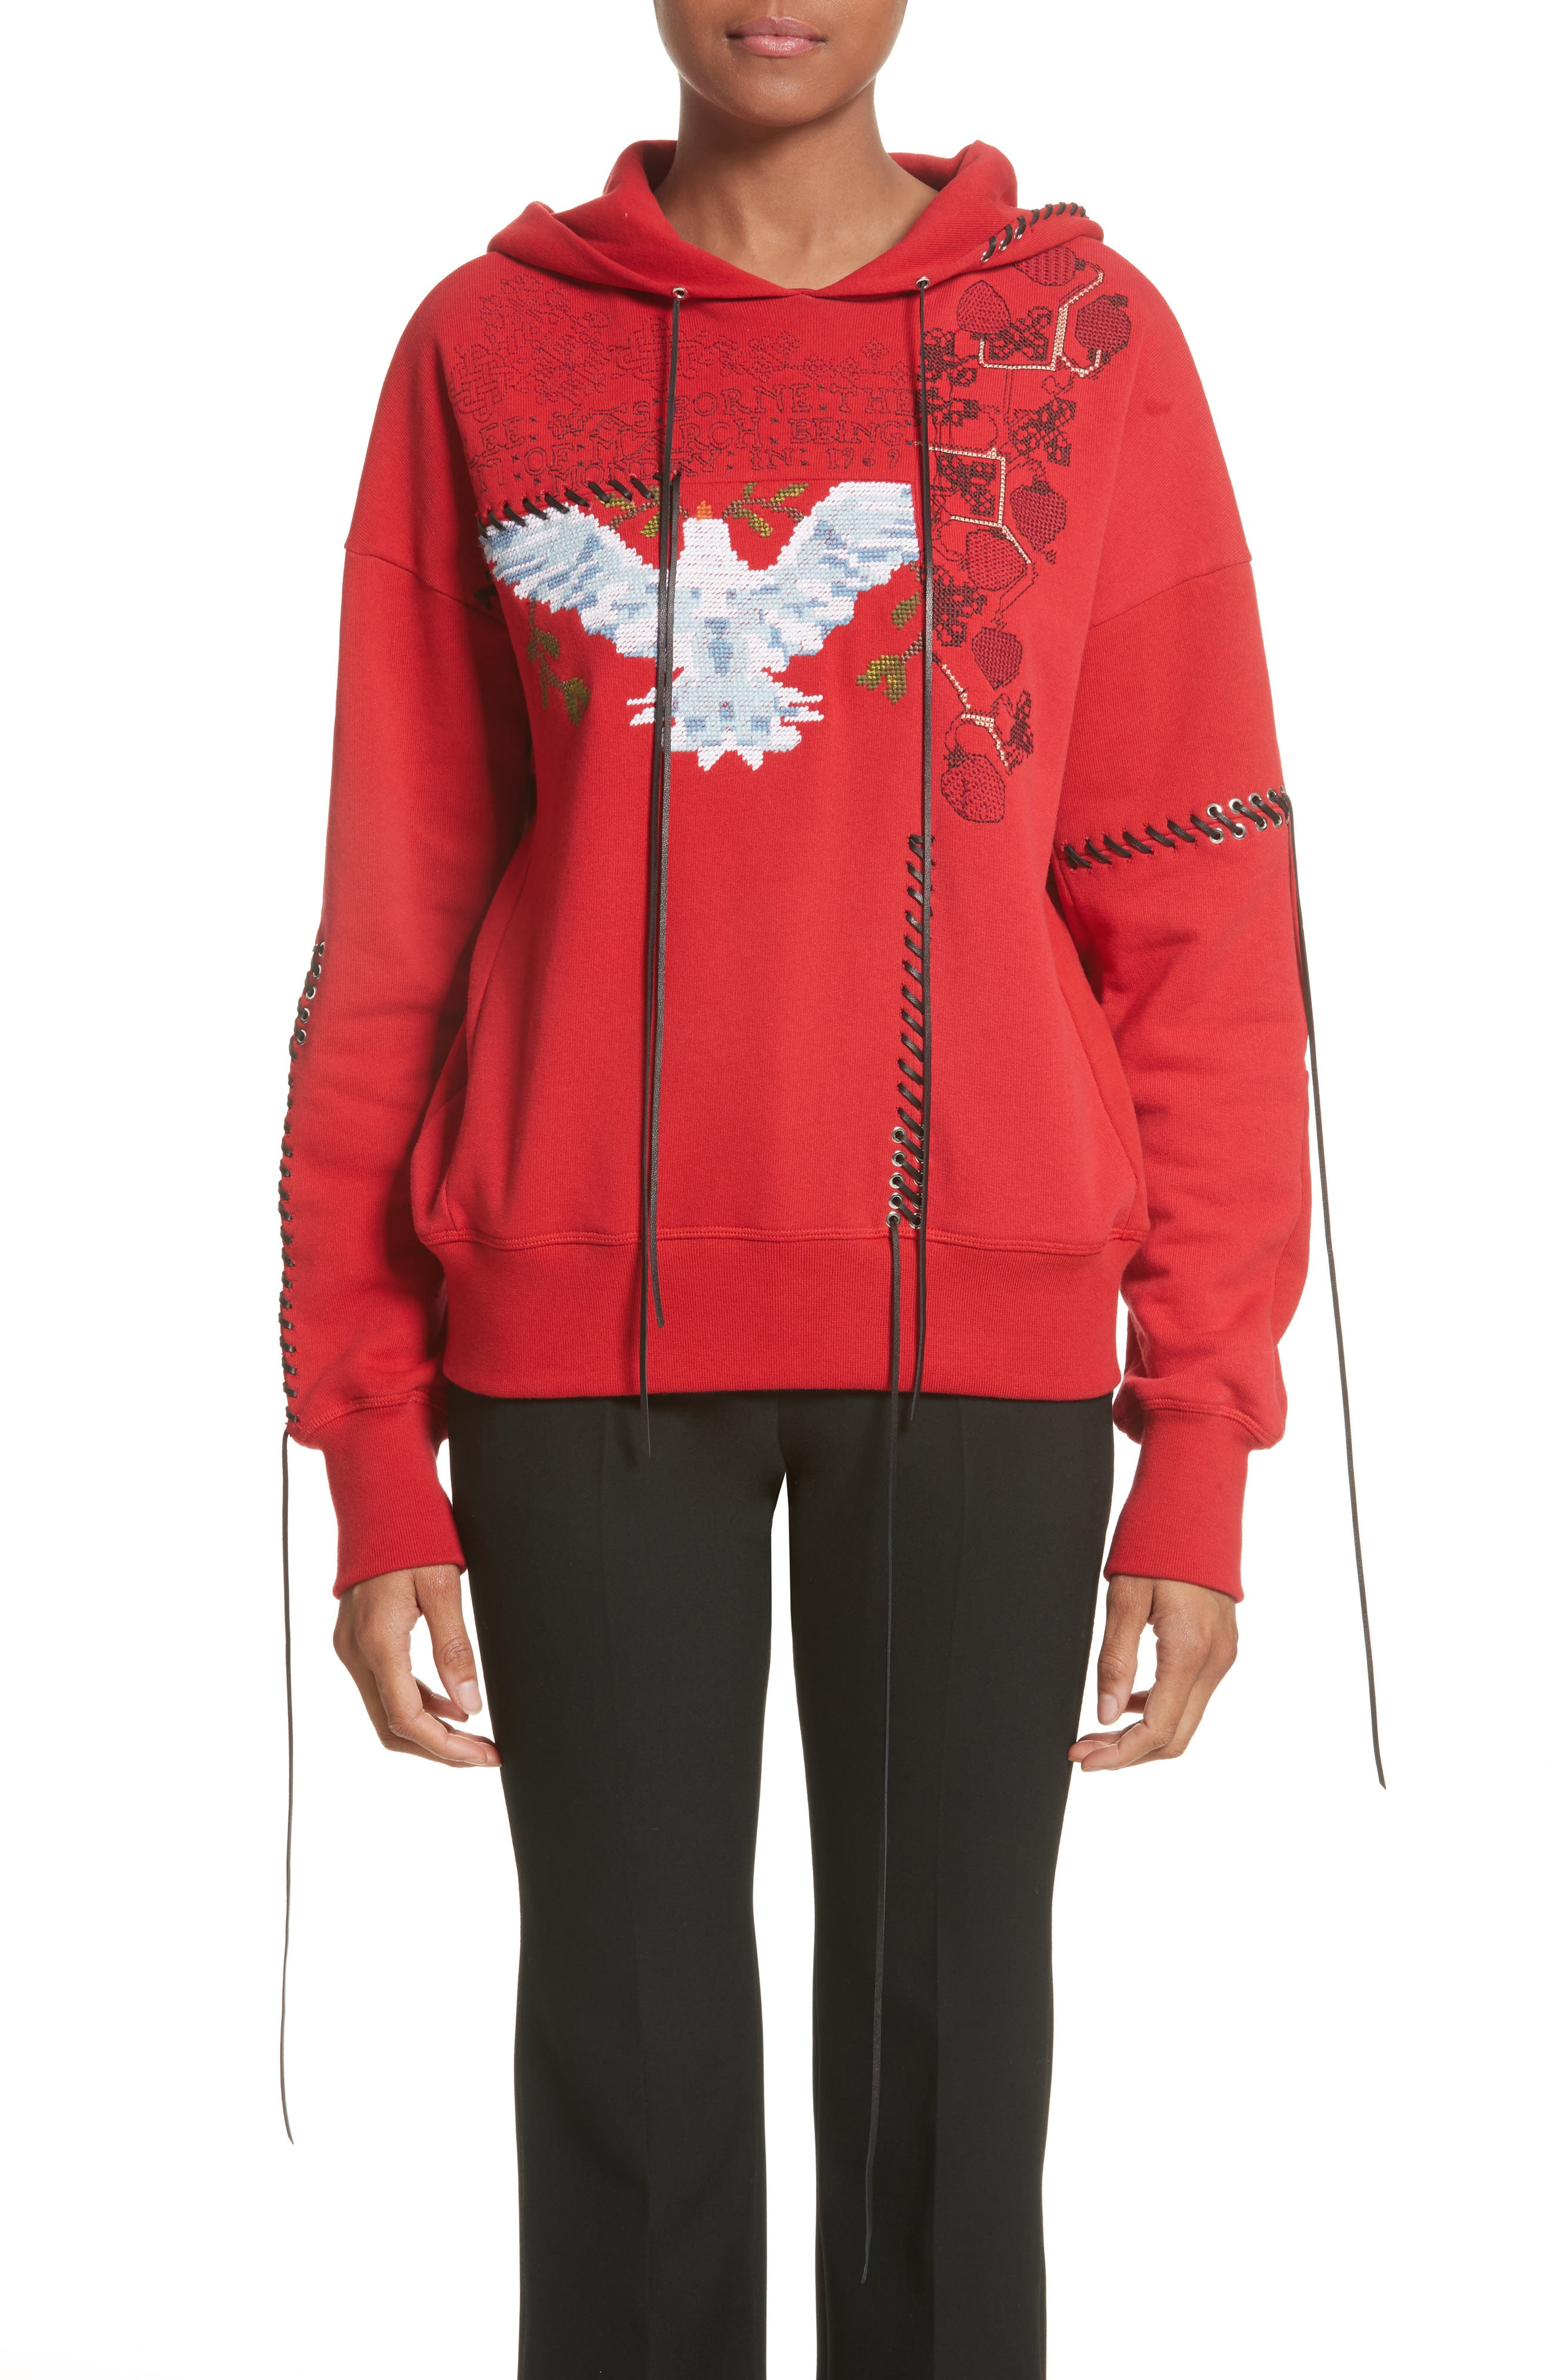 Alexander McQueen Embroidered Sweatshirt